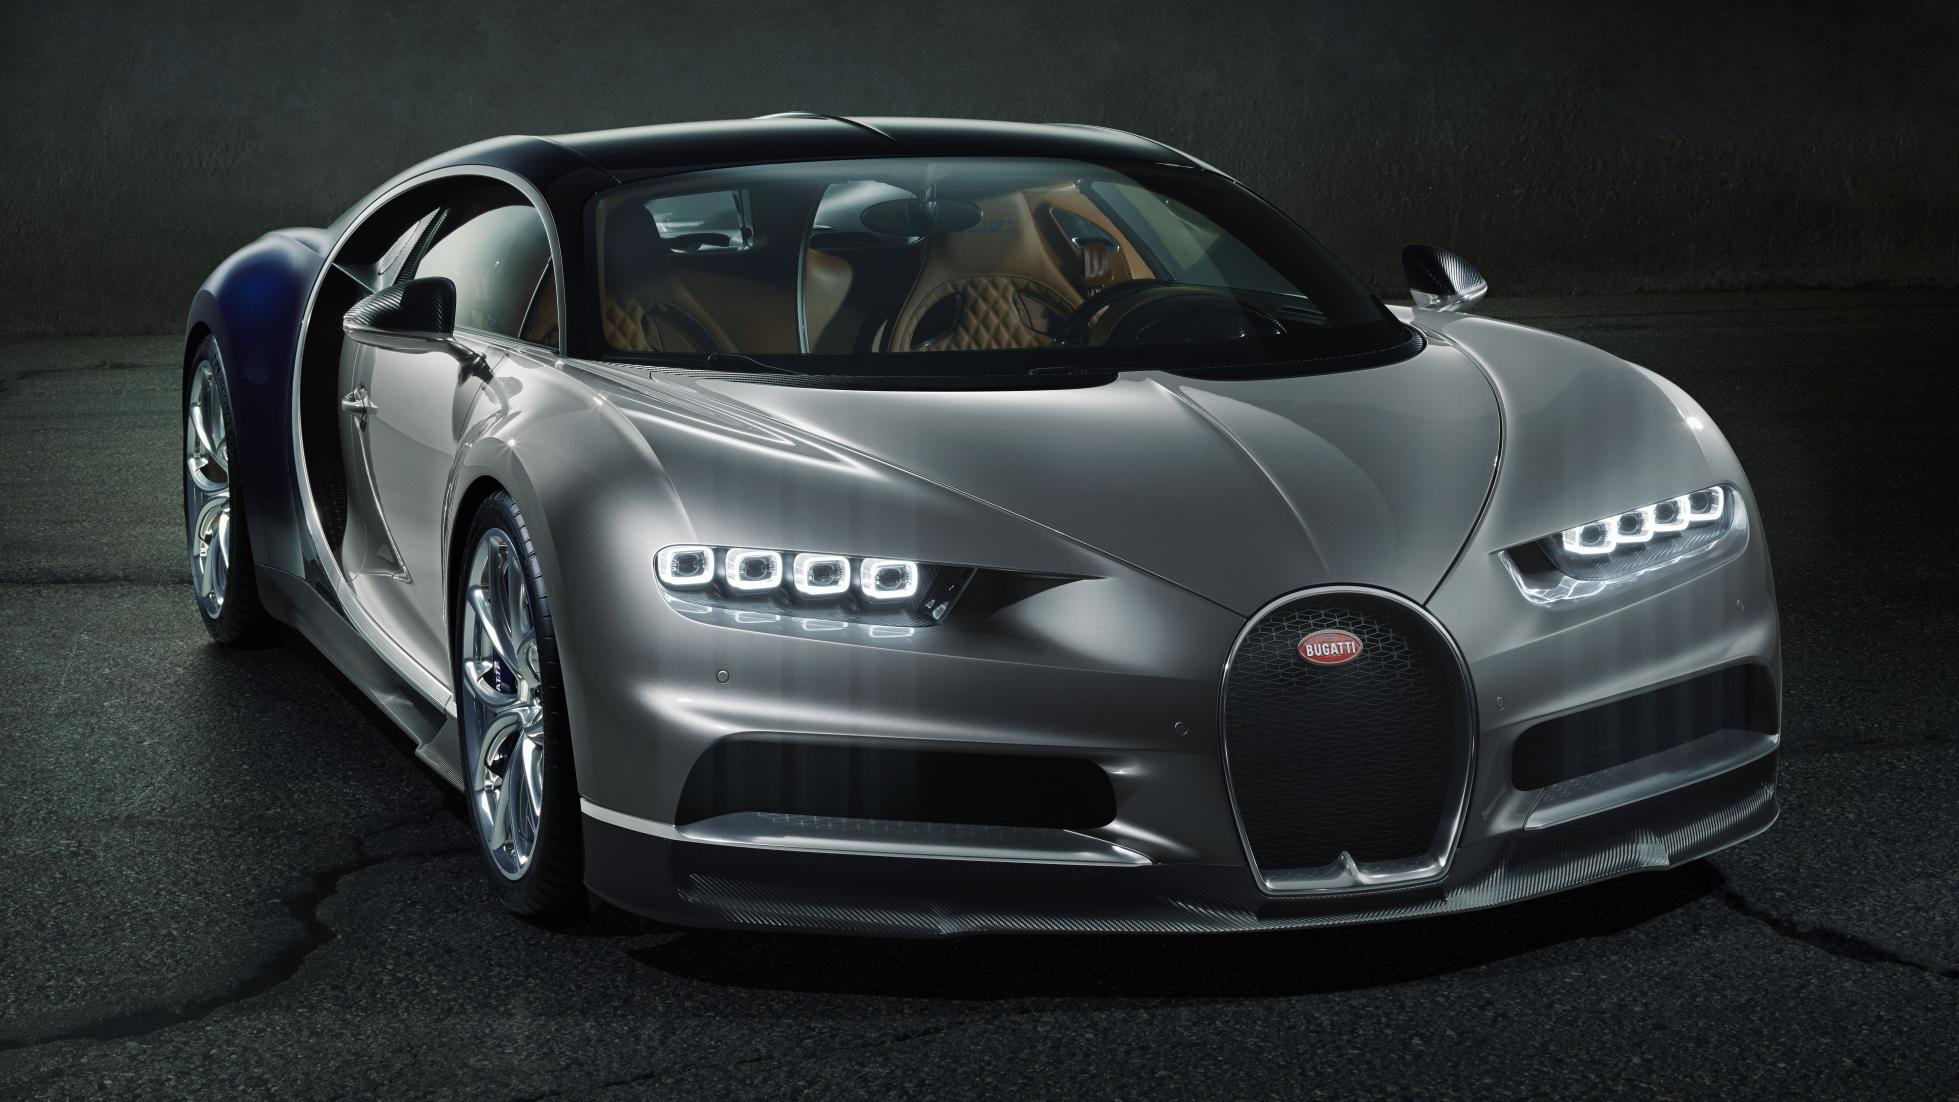 10 Things You Must Know About The New Bugatti Chiron | Front View of Bugatti Chiron